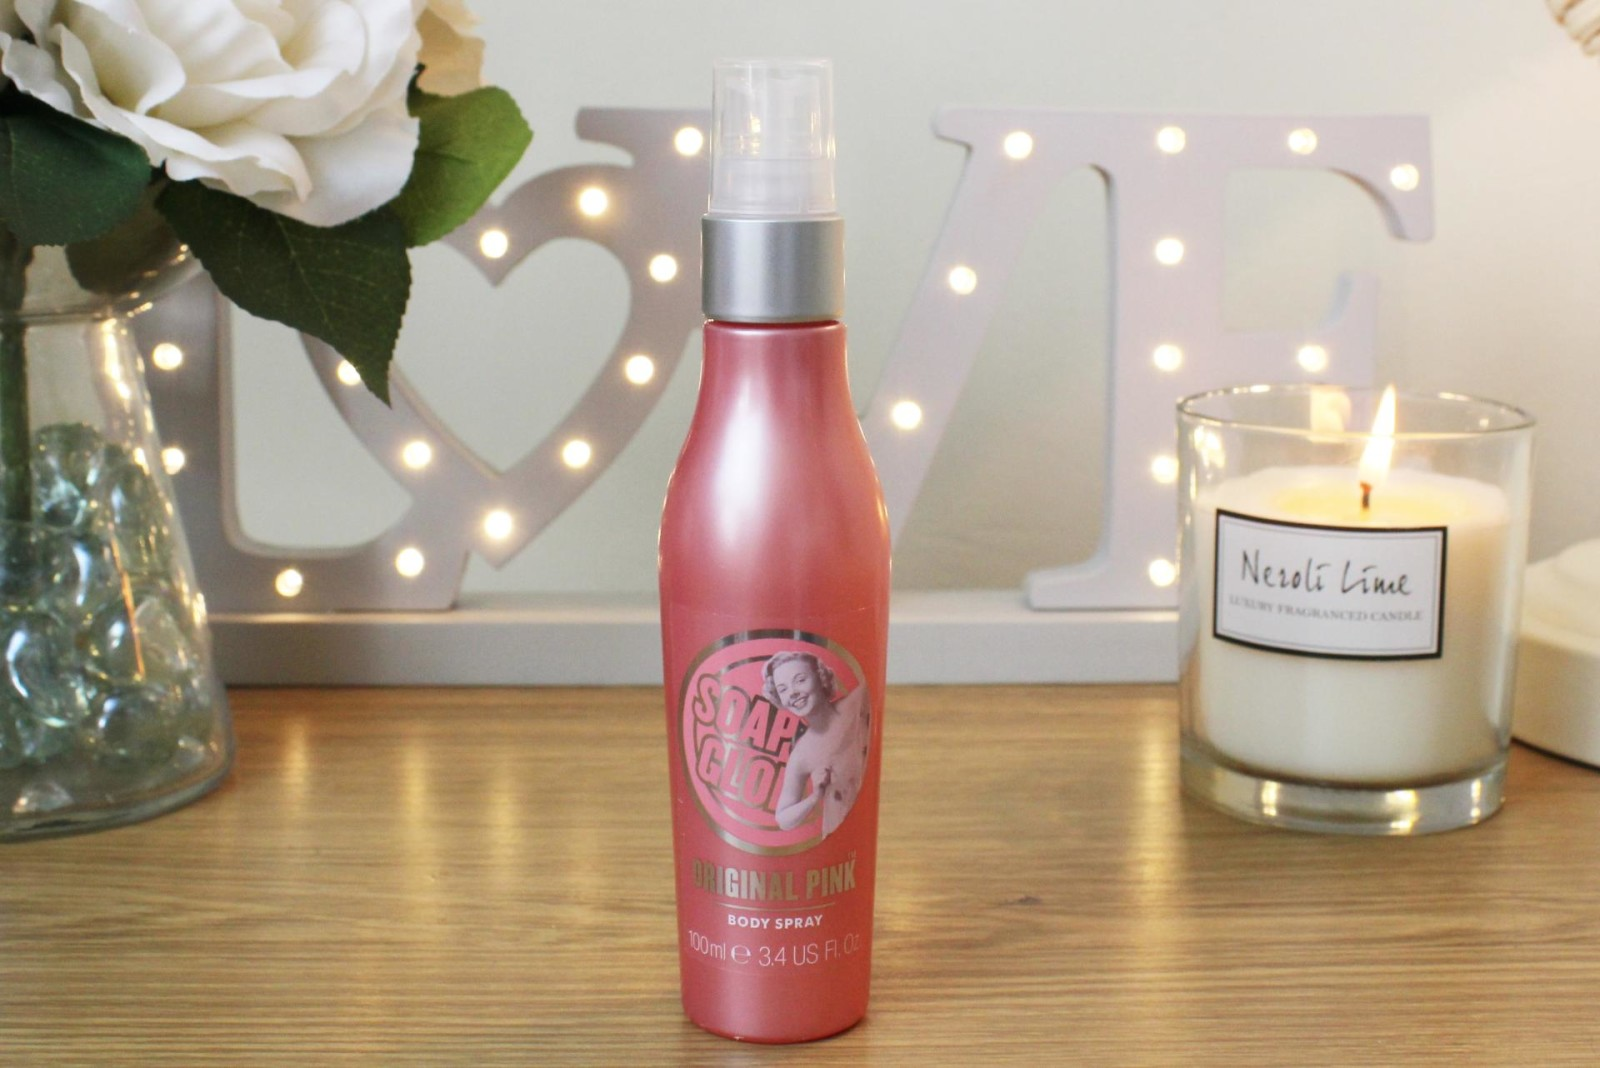 Soap and Glory Body Sprays Original Pink